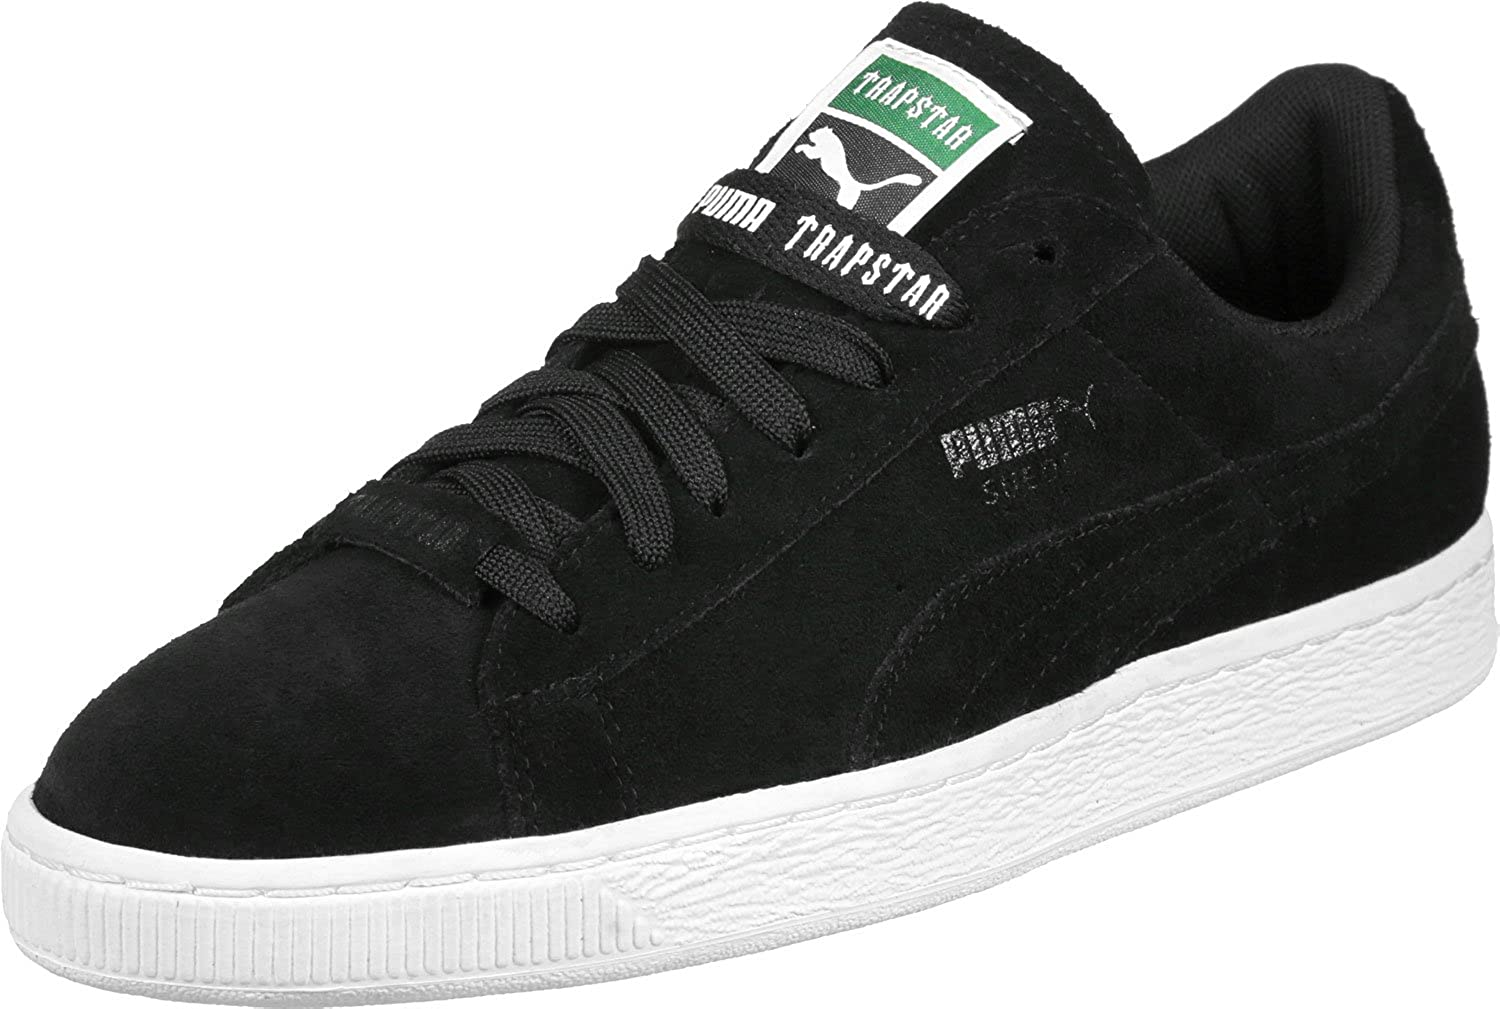 Puma Men s X Trapstar Black Leather Running Shoes - 7 UK India (40.5 EU)   Buy Online at Low Prices in India - Amazon.in b5965261c